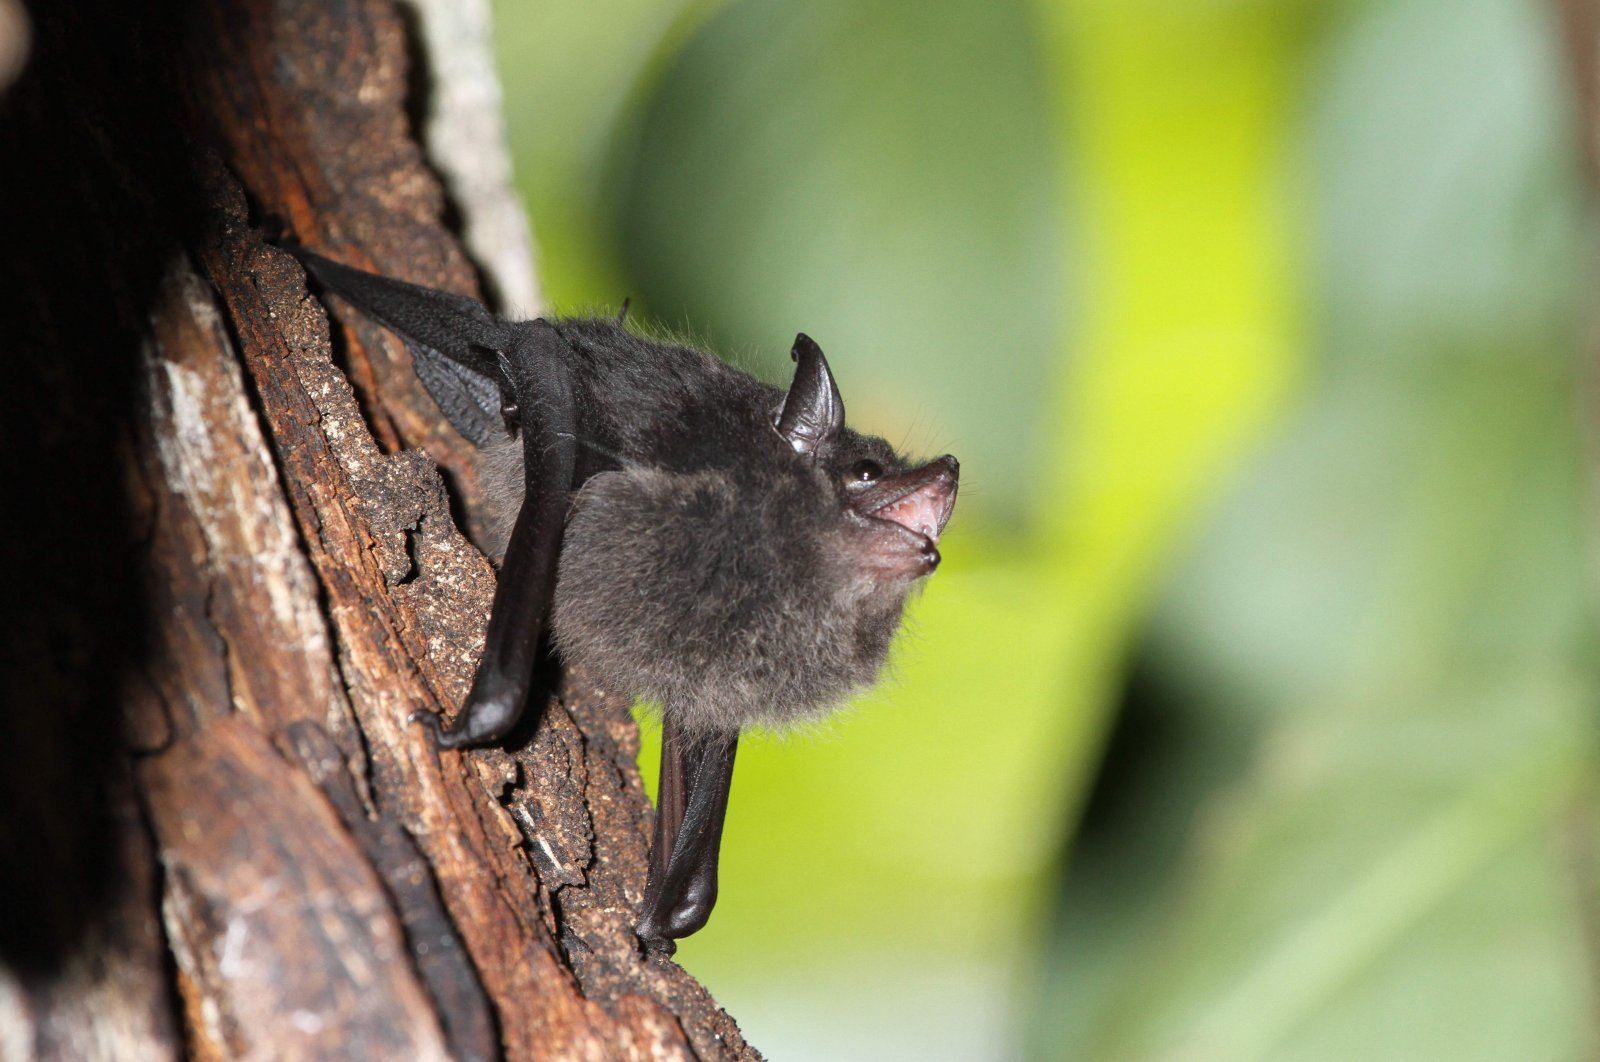 AA Saccopteryx bilineata pup babbling in the day-roost, photo obtained on Aug. 19, 2021. (EurekAlert! handout via AFP Photo)